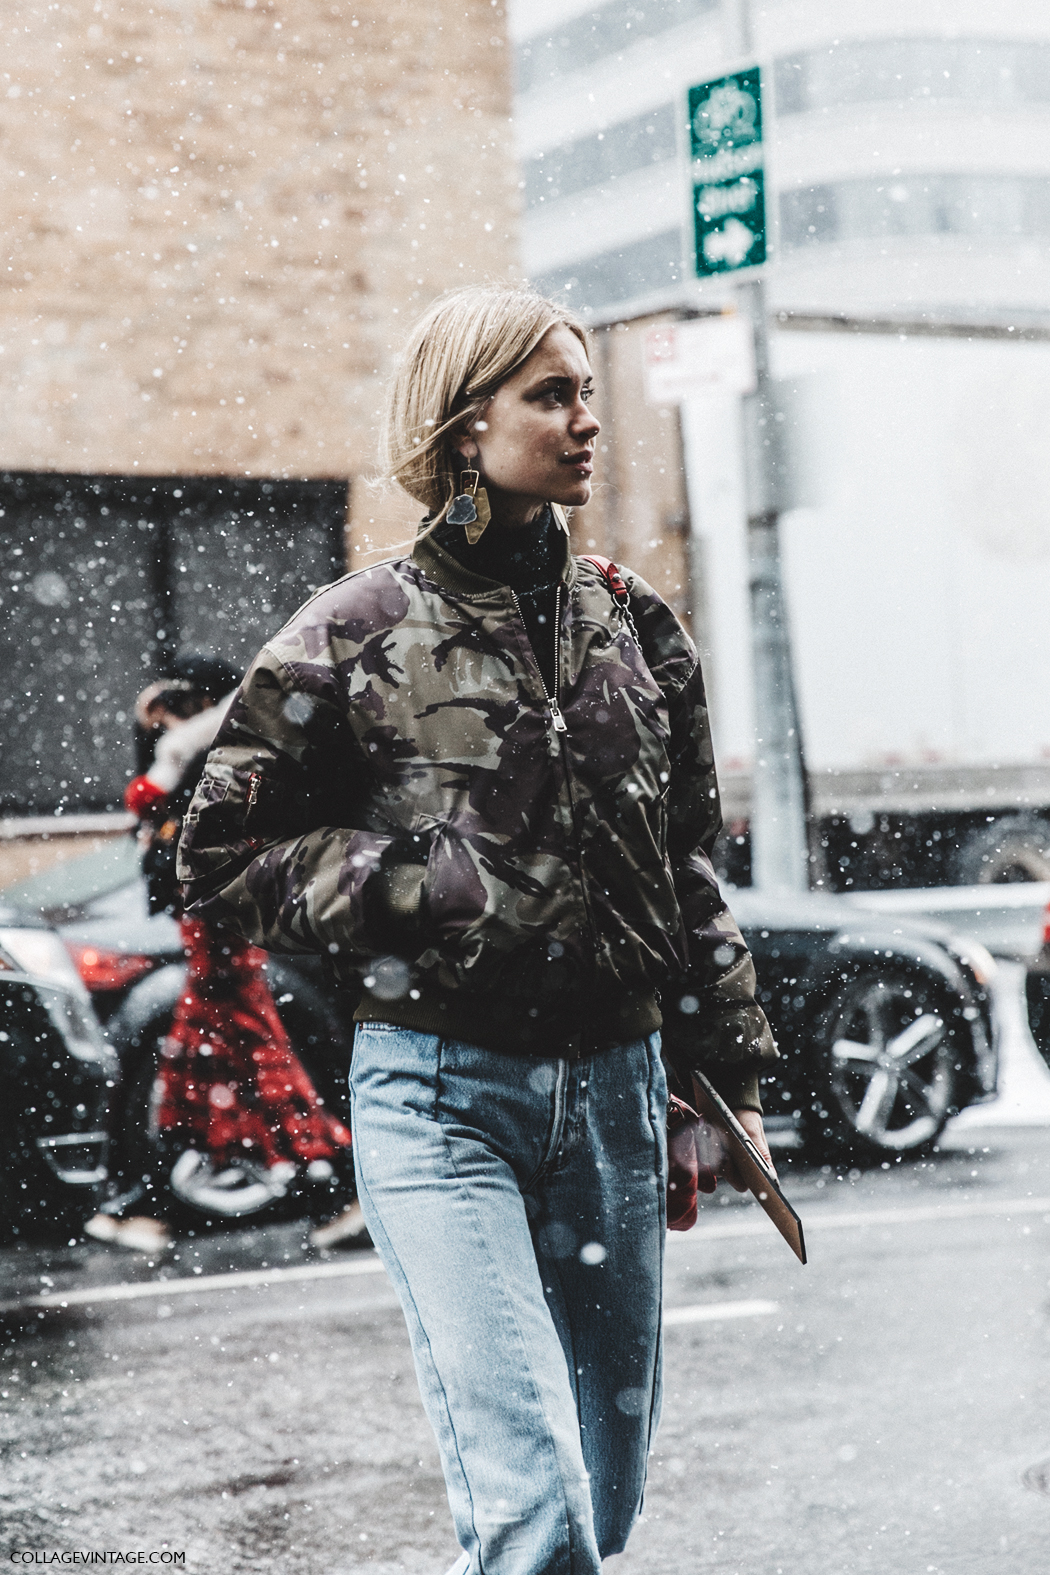 NYFW-New_York_Fashion_Week-Fall_Winter-17-Street_Style-Pernille_Teisbaek-Military_Trend-Bomber-Vetements_Jeans-Rainy_Boots-Red_Bag-